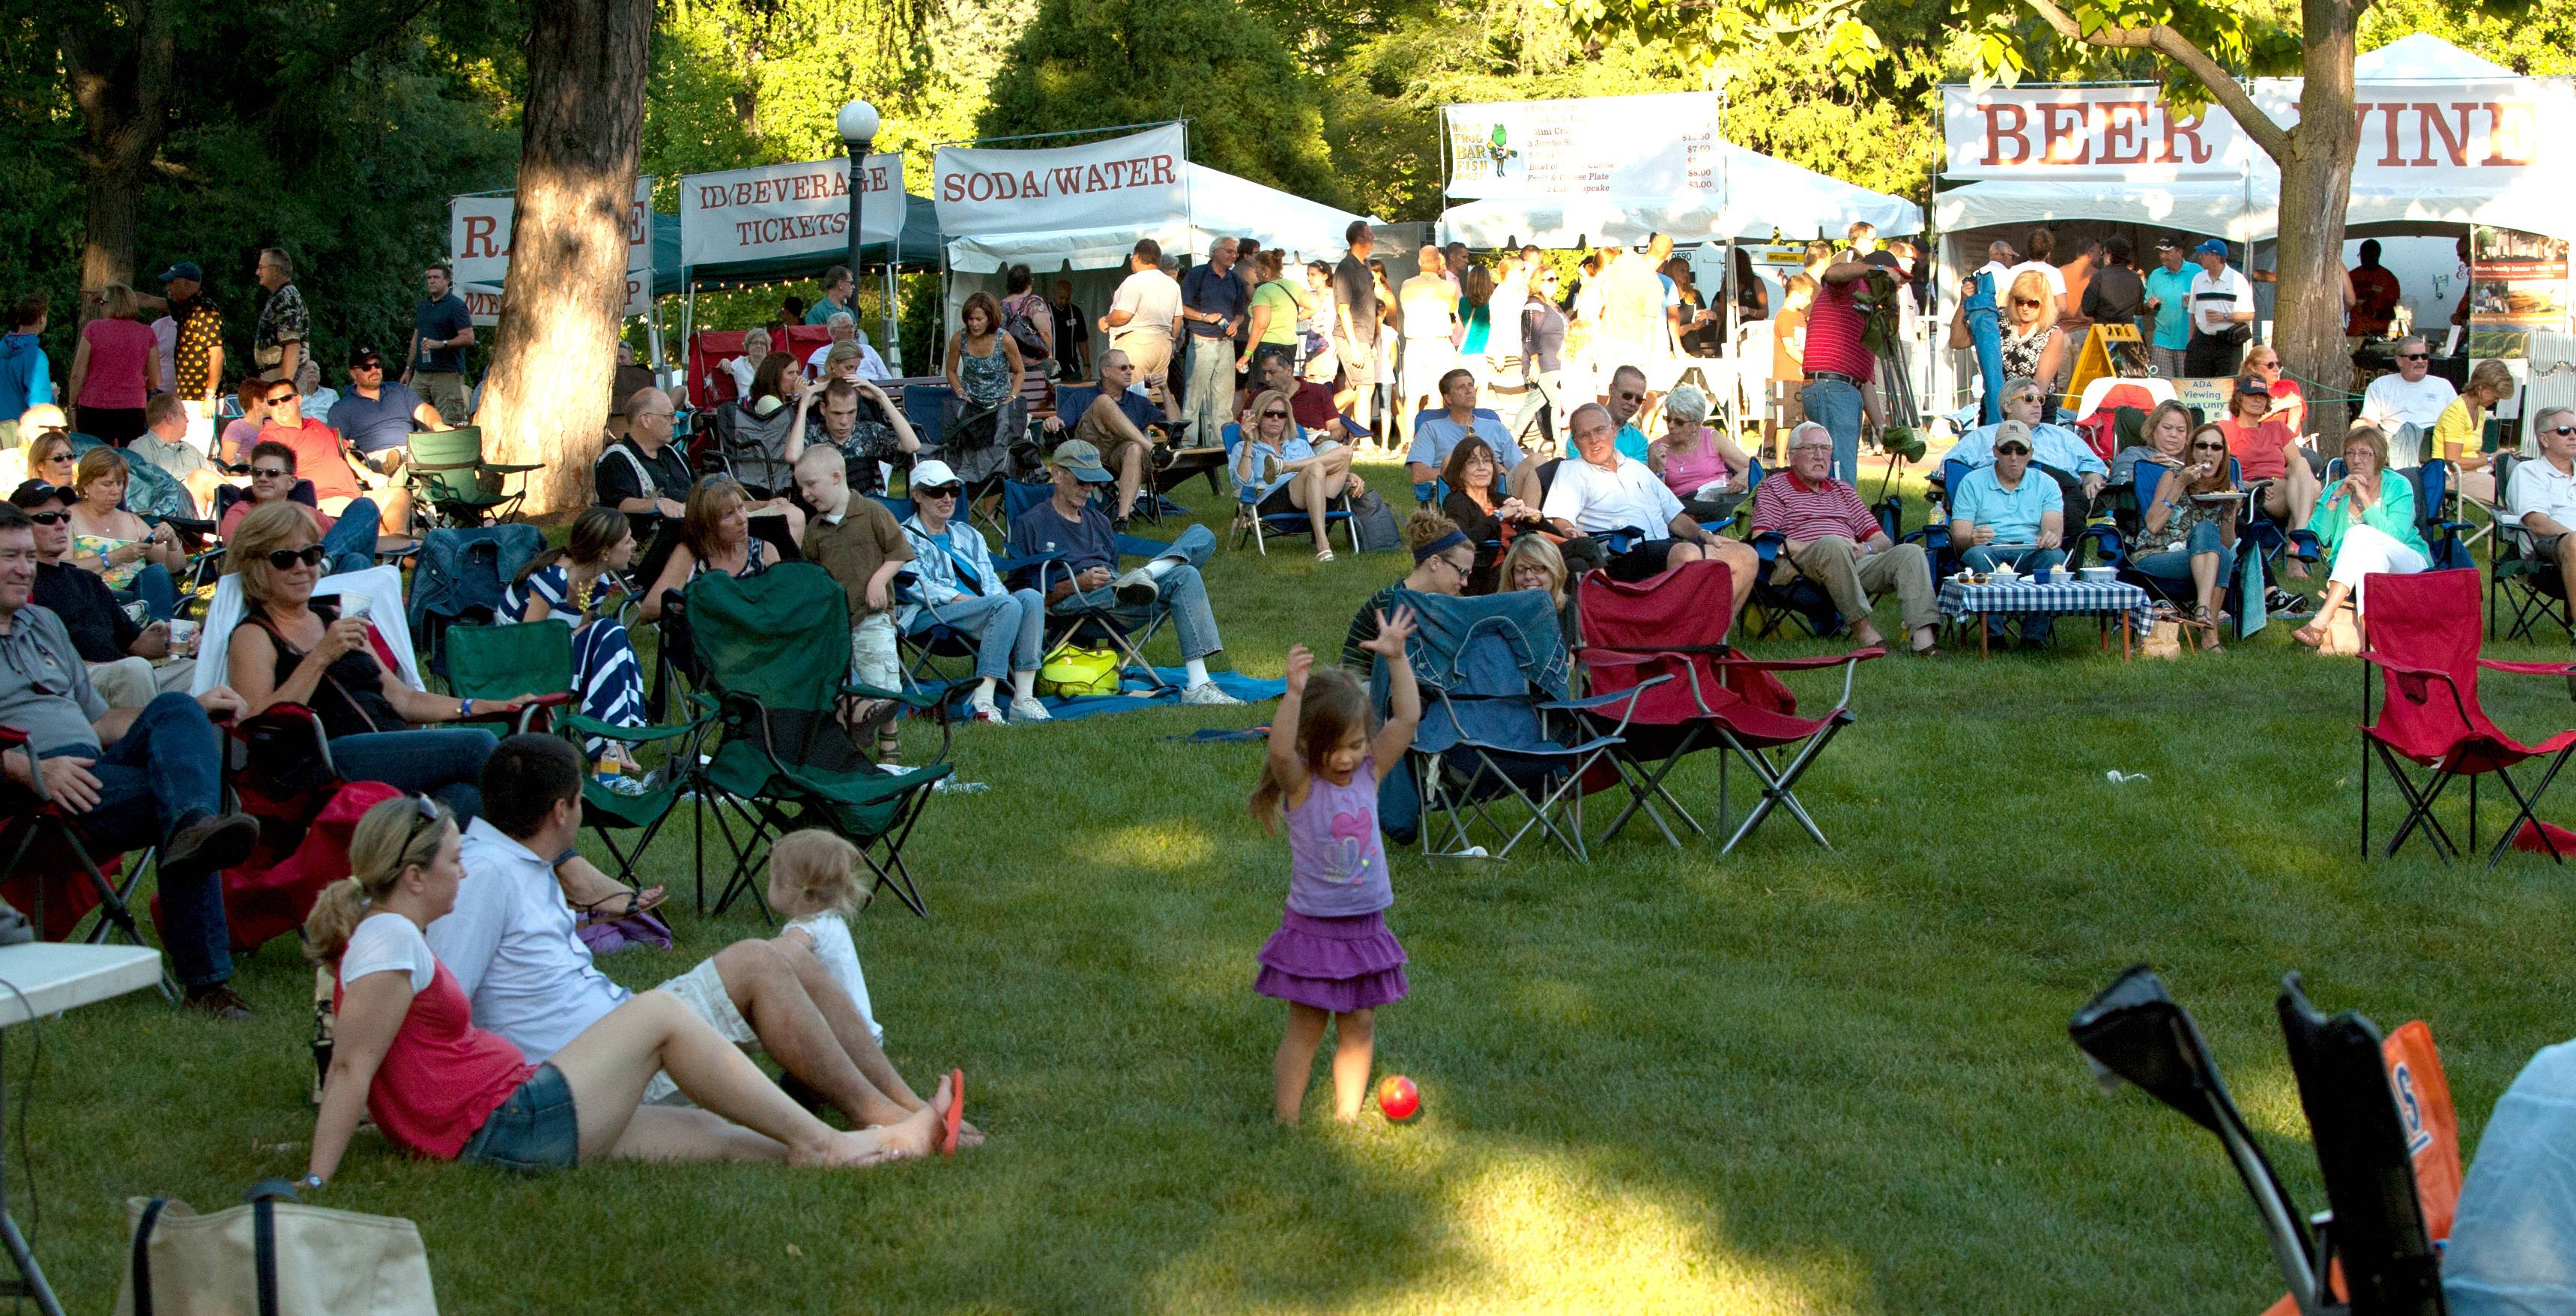 Naperville shuts out Italian fest from city's history museum